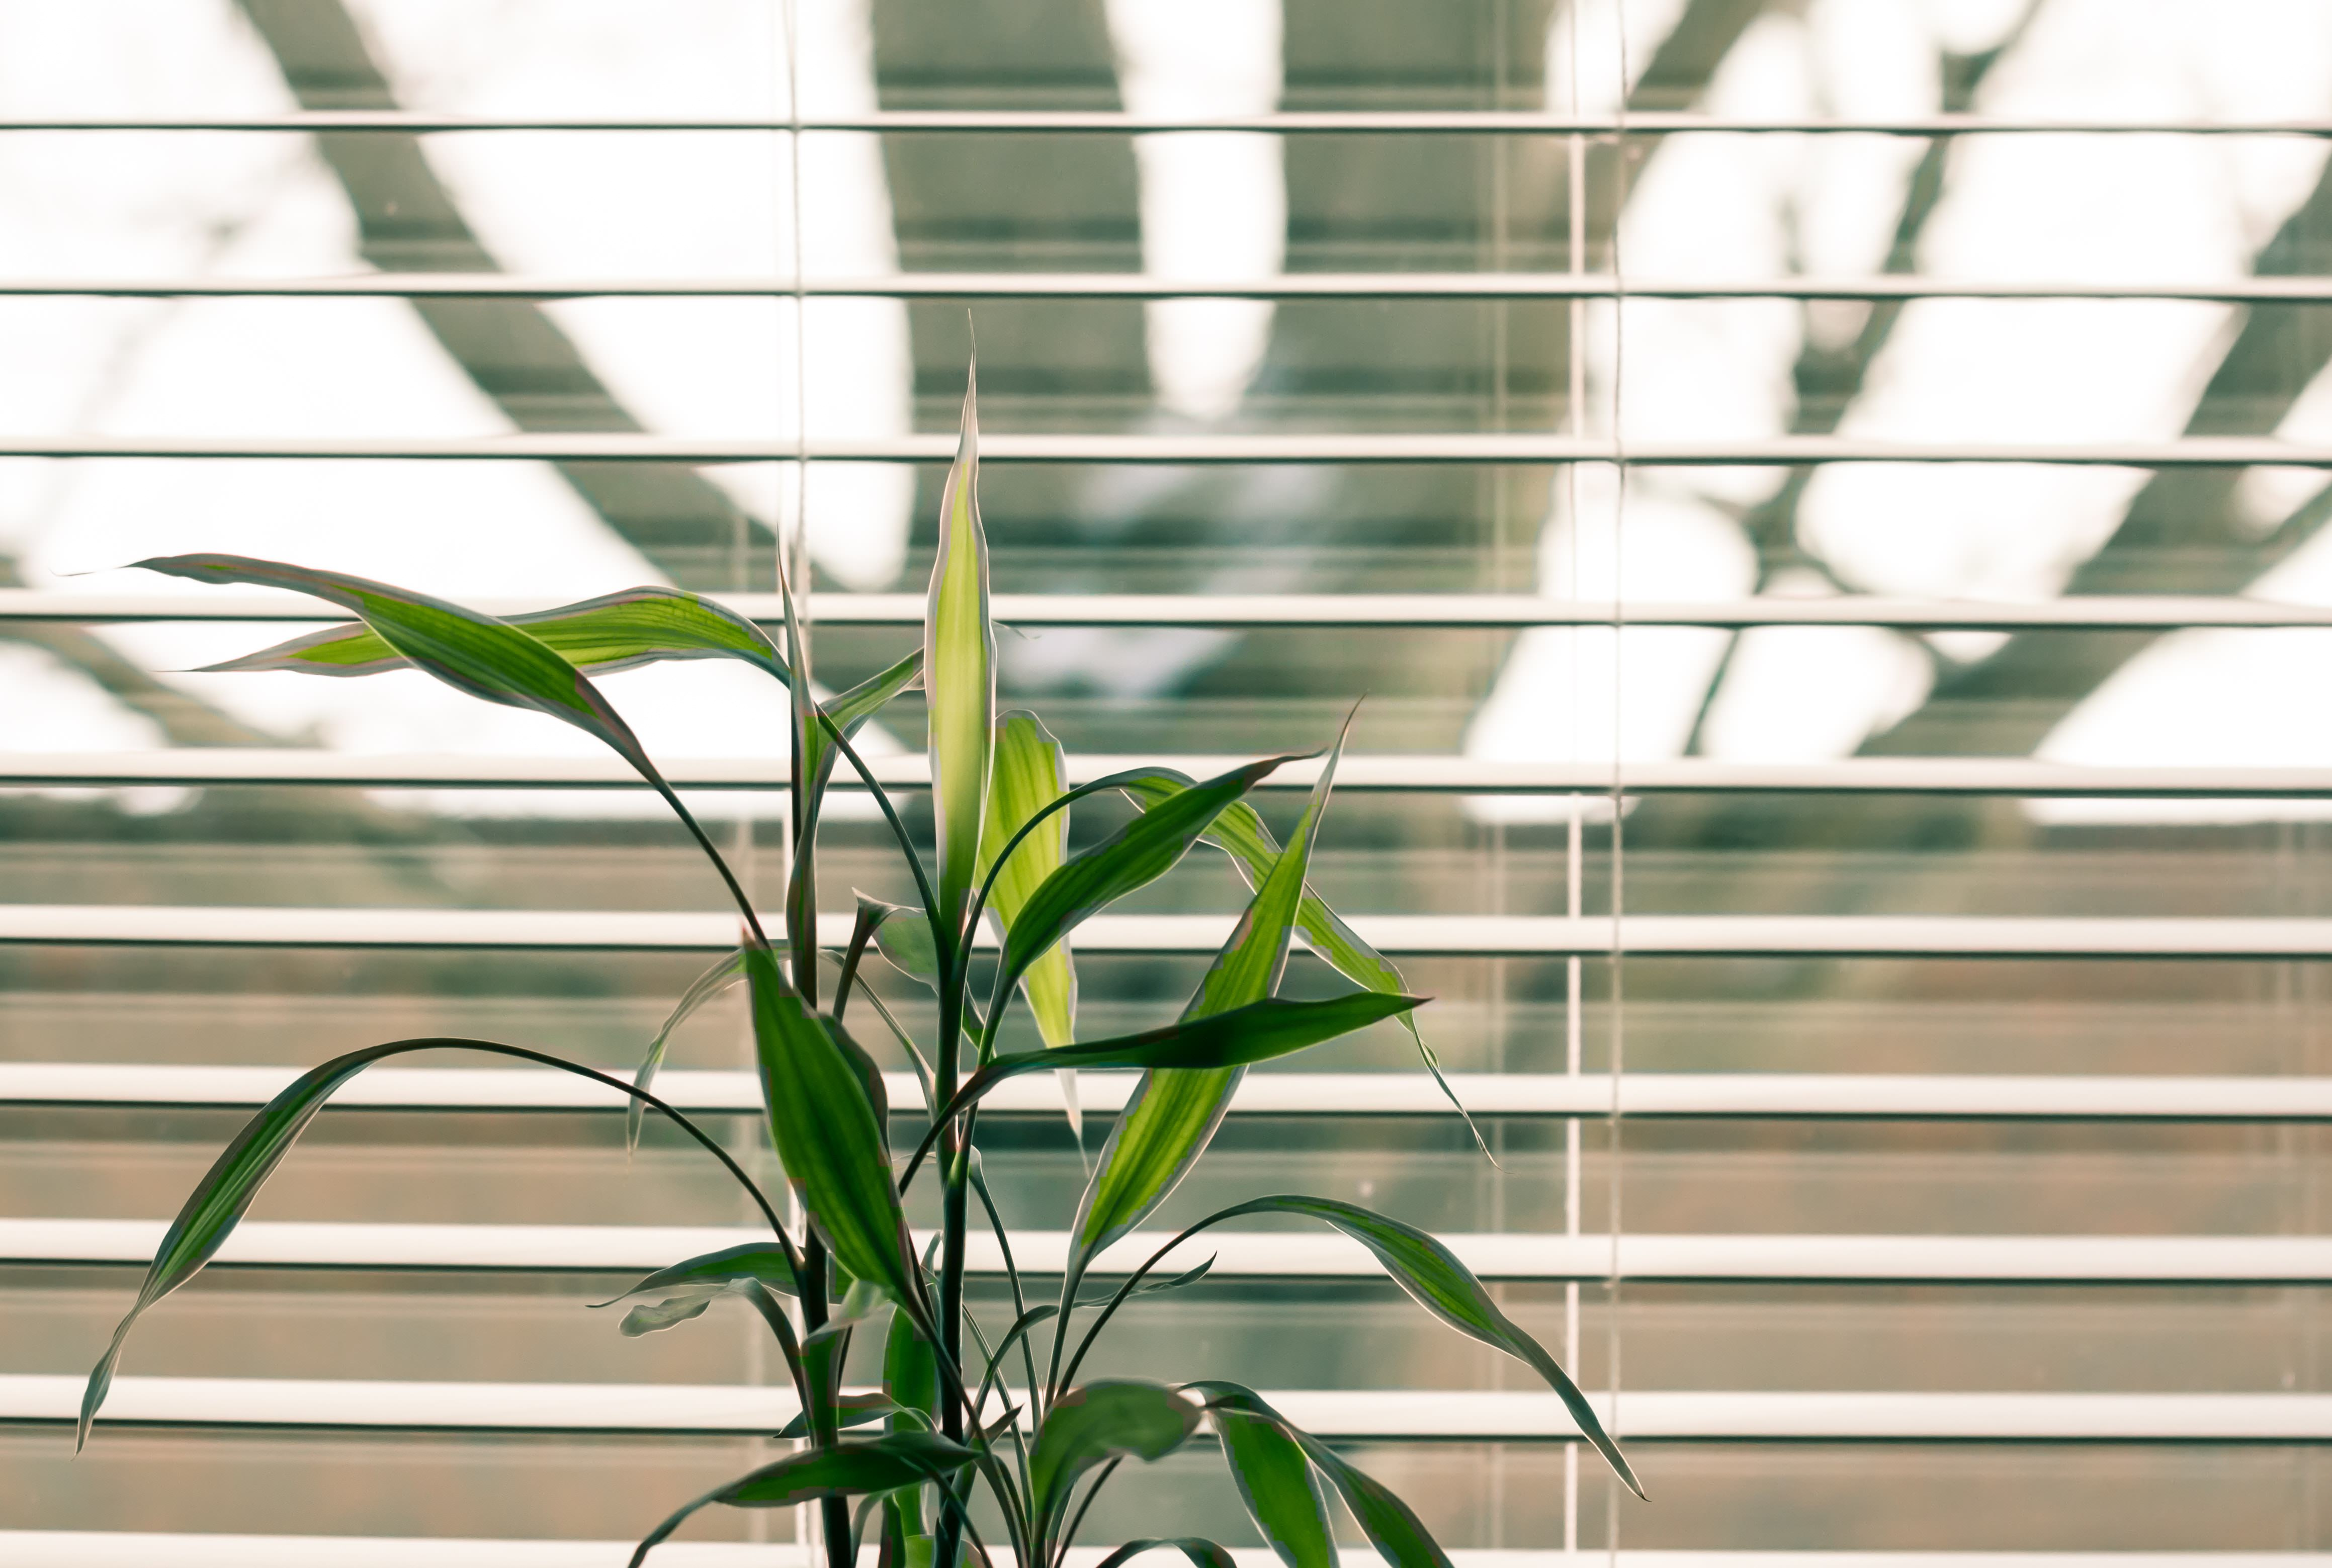 An image of Venetian blinds installed at a window to keep the sun light out.